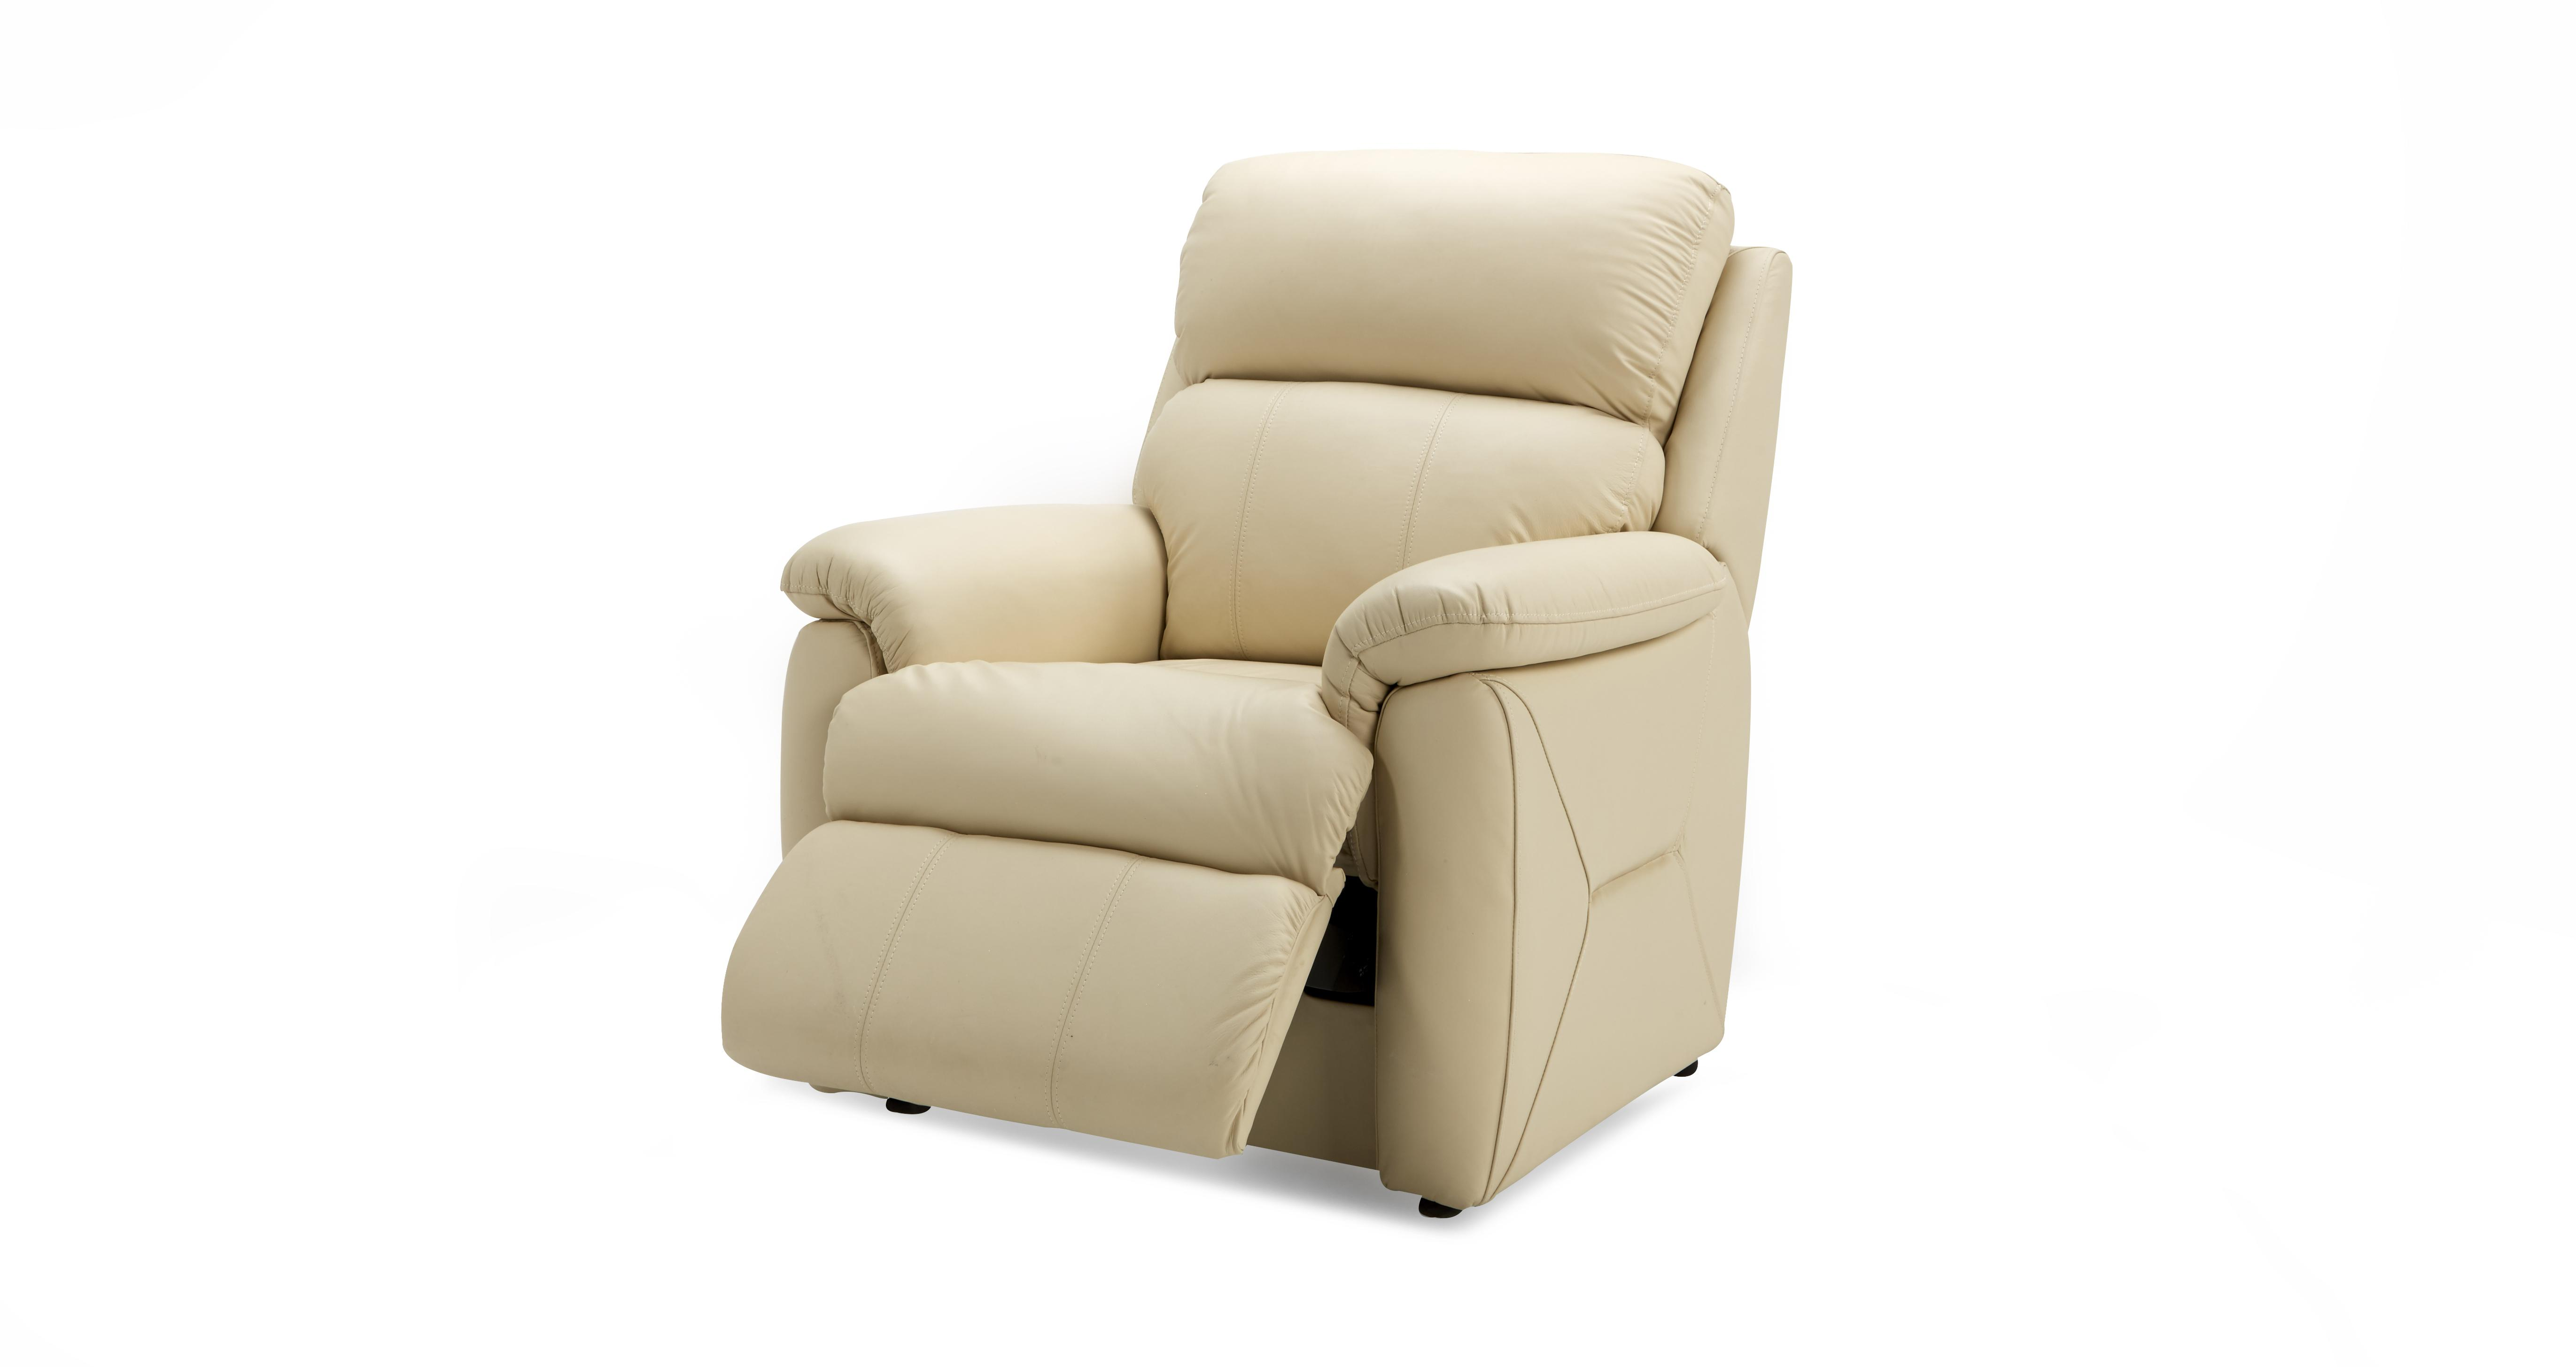 dfs navona sofa reviews togo black leather rise and tilt power recliner chair peru